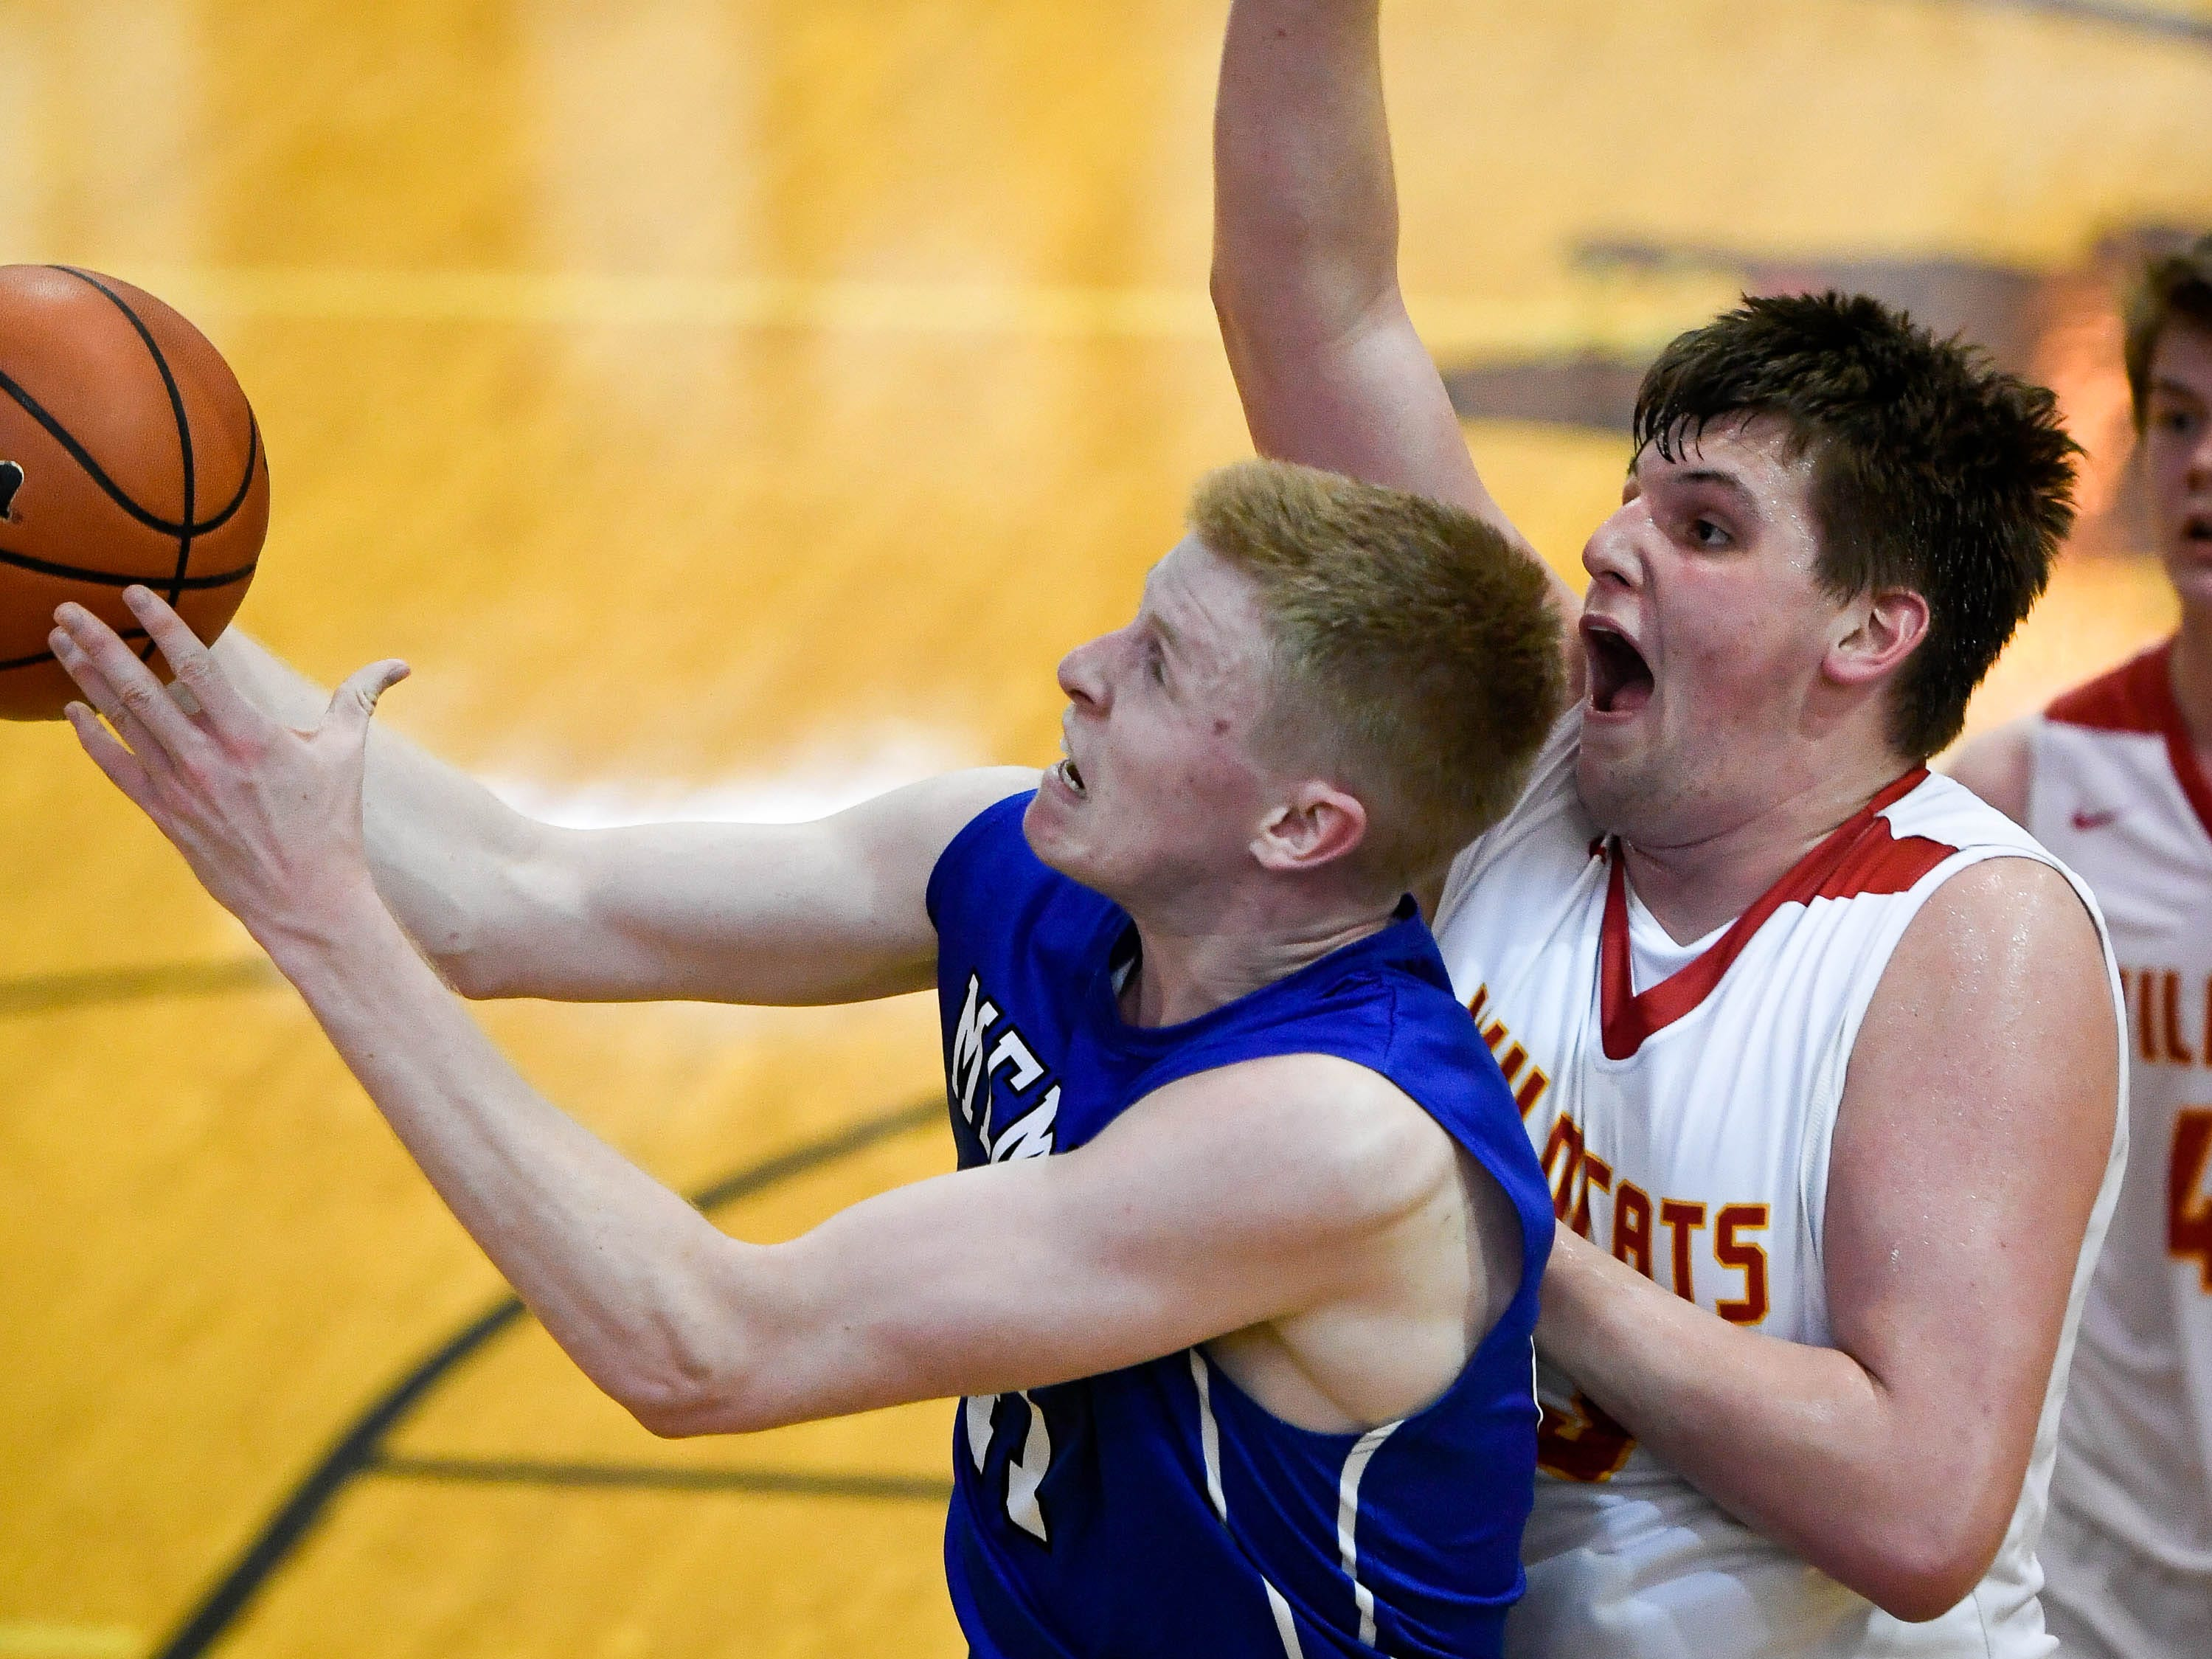 Memorial's Sam DeVault (41) looks to shoot under defensive pressure from Mater Dei's Logan Carter (23) as the Memorial Tigers play the Mater Dei Wildcats in the Southern Indiana Athletic Conference semi-finals at Central High Thursday, January 10, 2019.